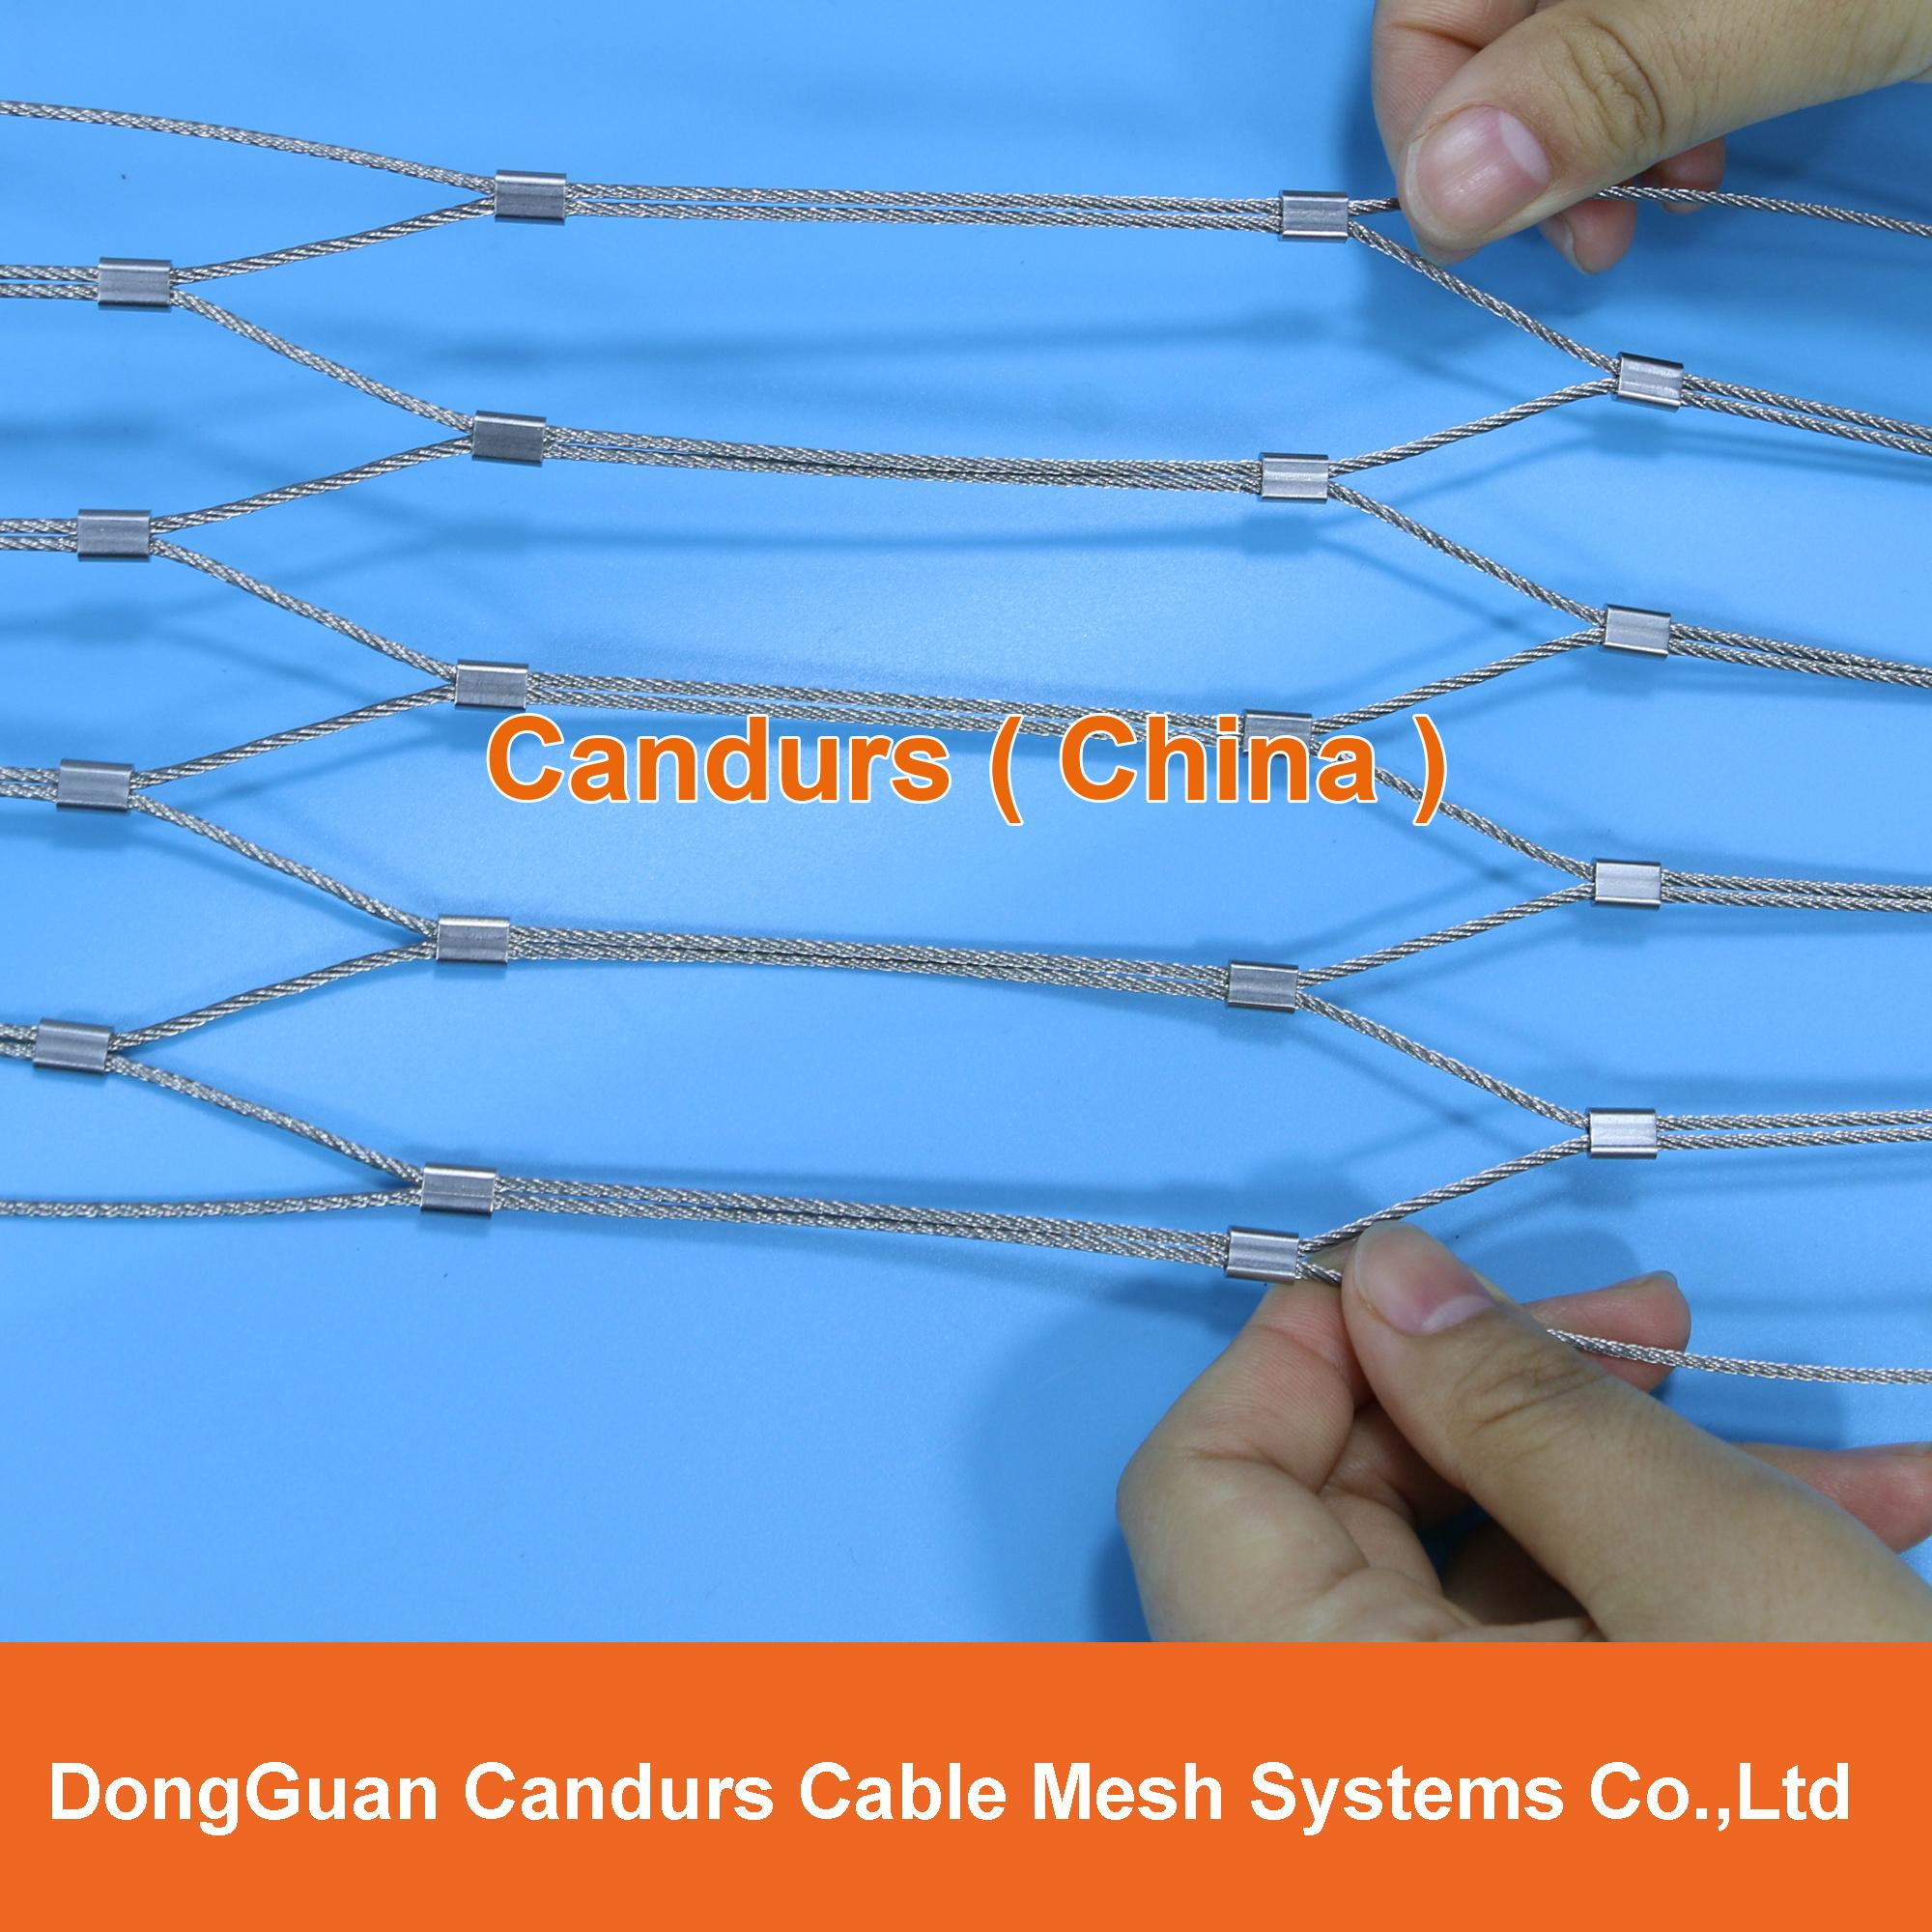 Stainless Steel Wire Cable Mesh Handrailing 15